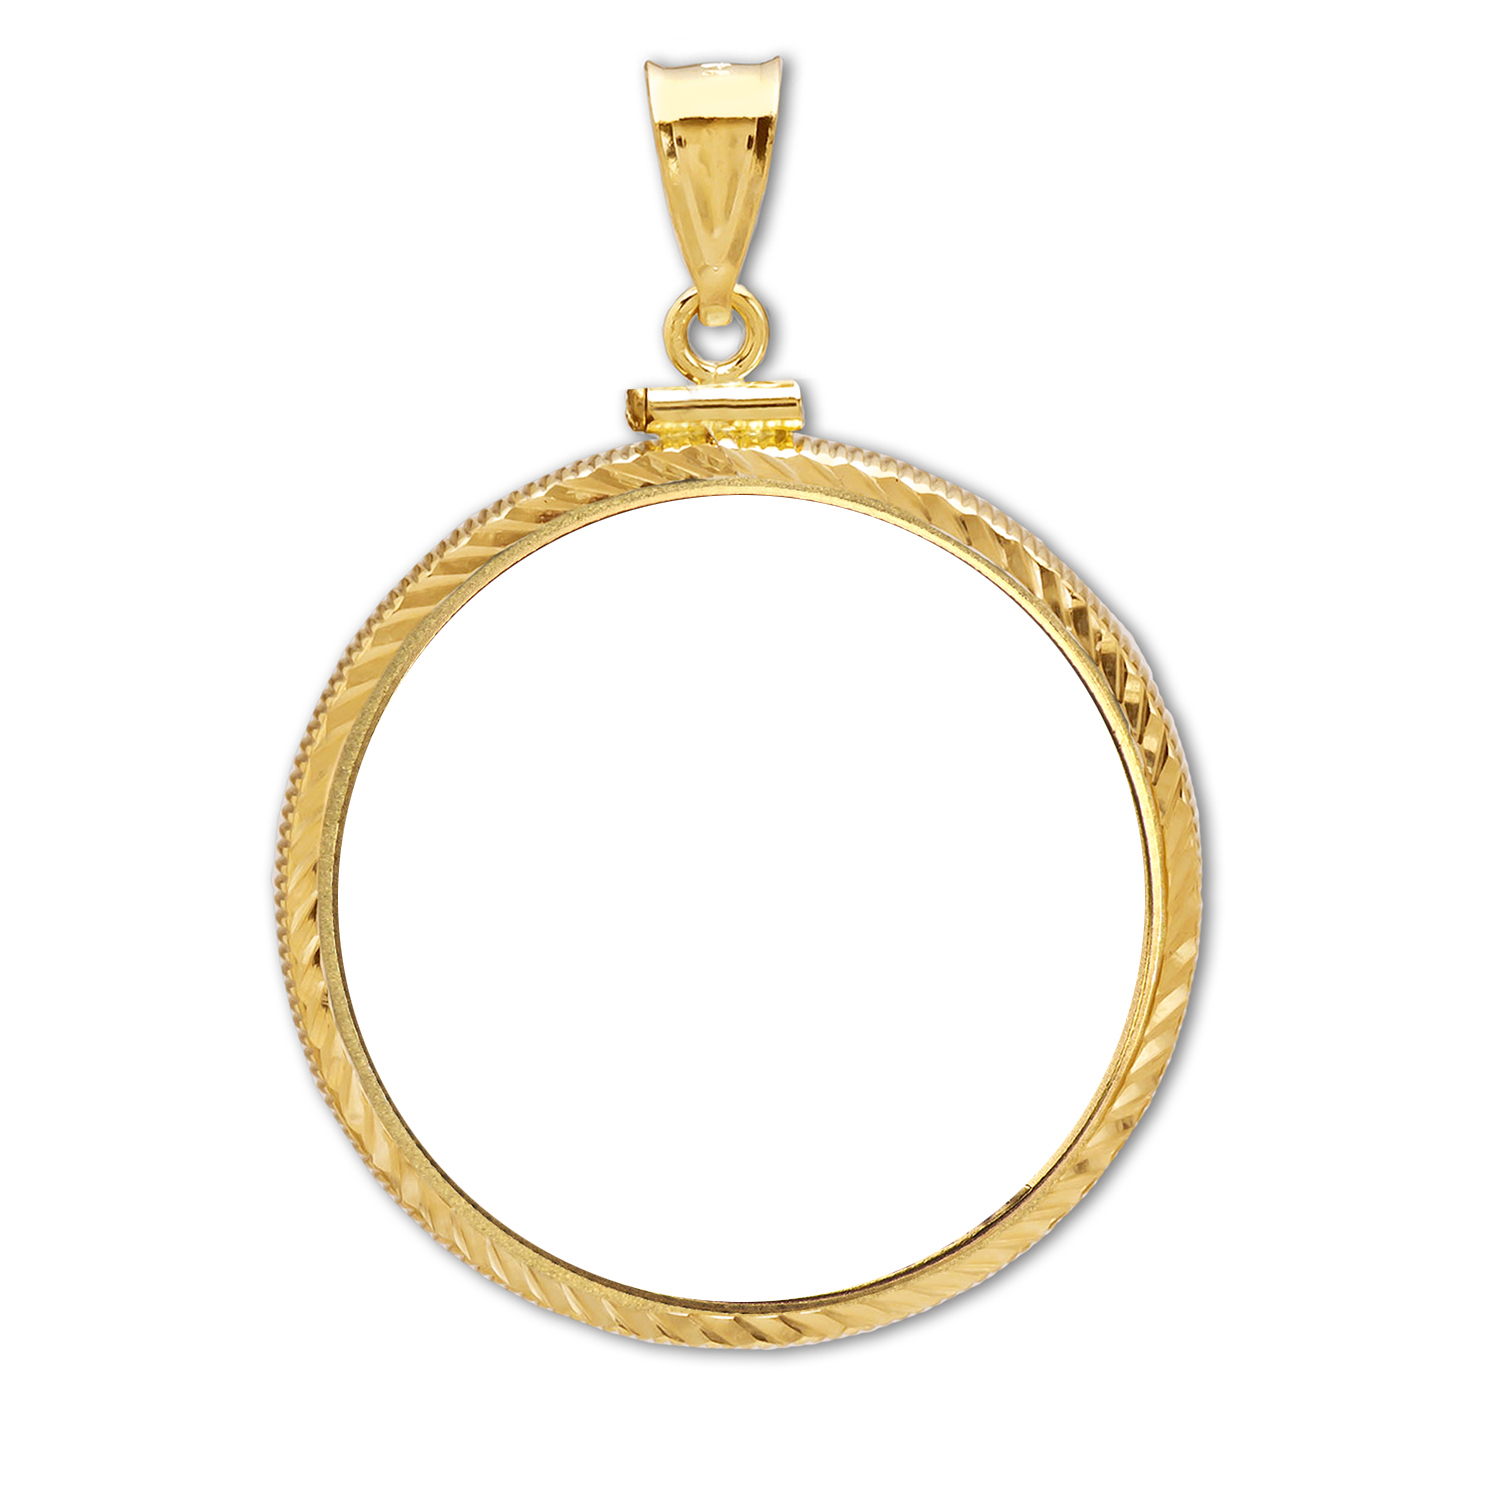 14K Gold Screw-Top Diamond-Cut Coin Bezel - 16.5 mm